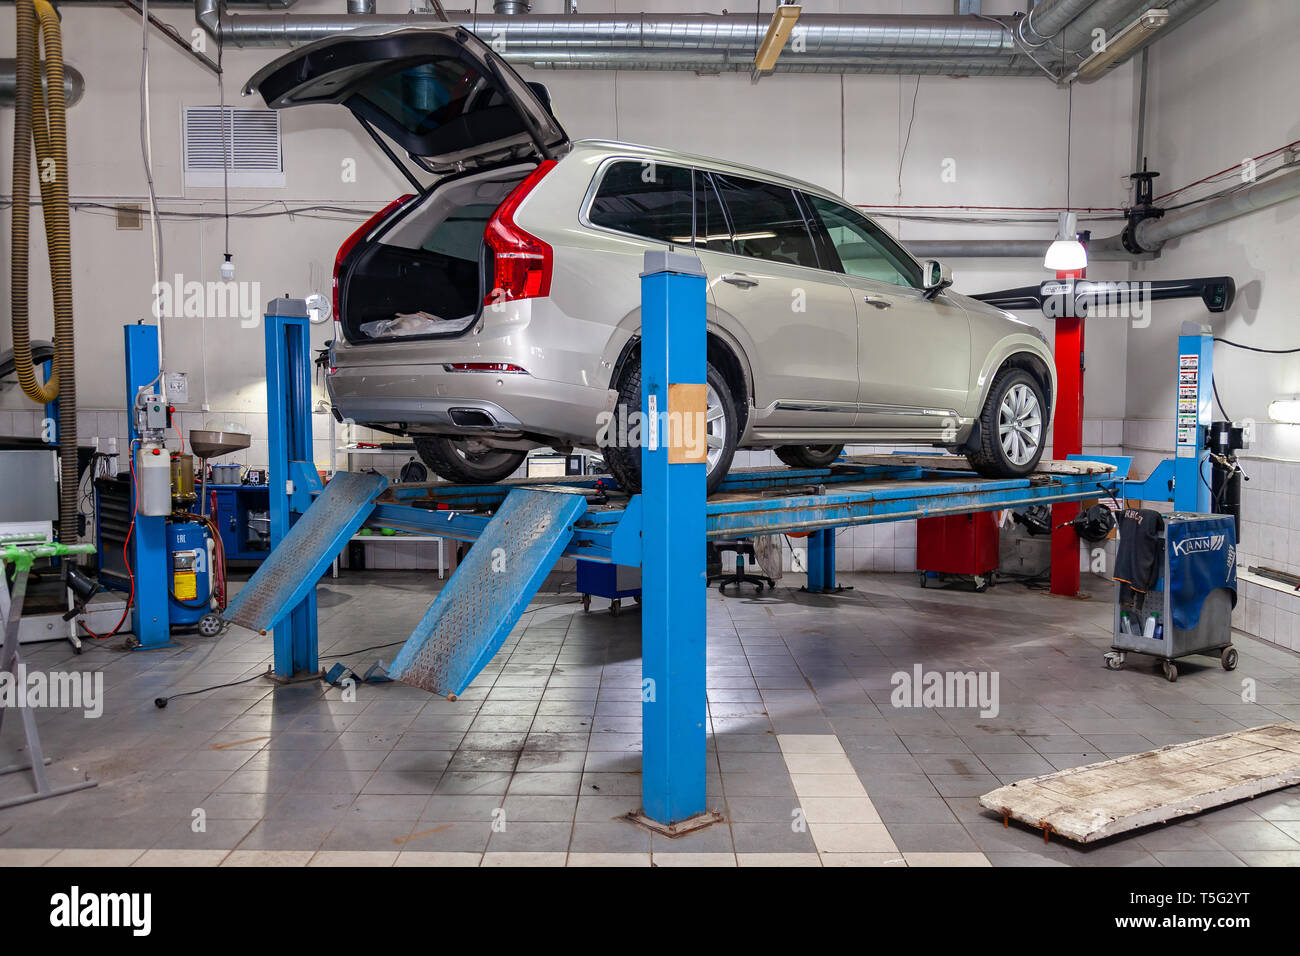 Novosibirsk, Russia - 08.01.2018: Beige used car Volvo XC90 with opened trunk stands on the stand wheel alignment convergence of the car in the worksh - Stock Image